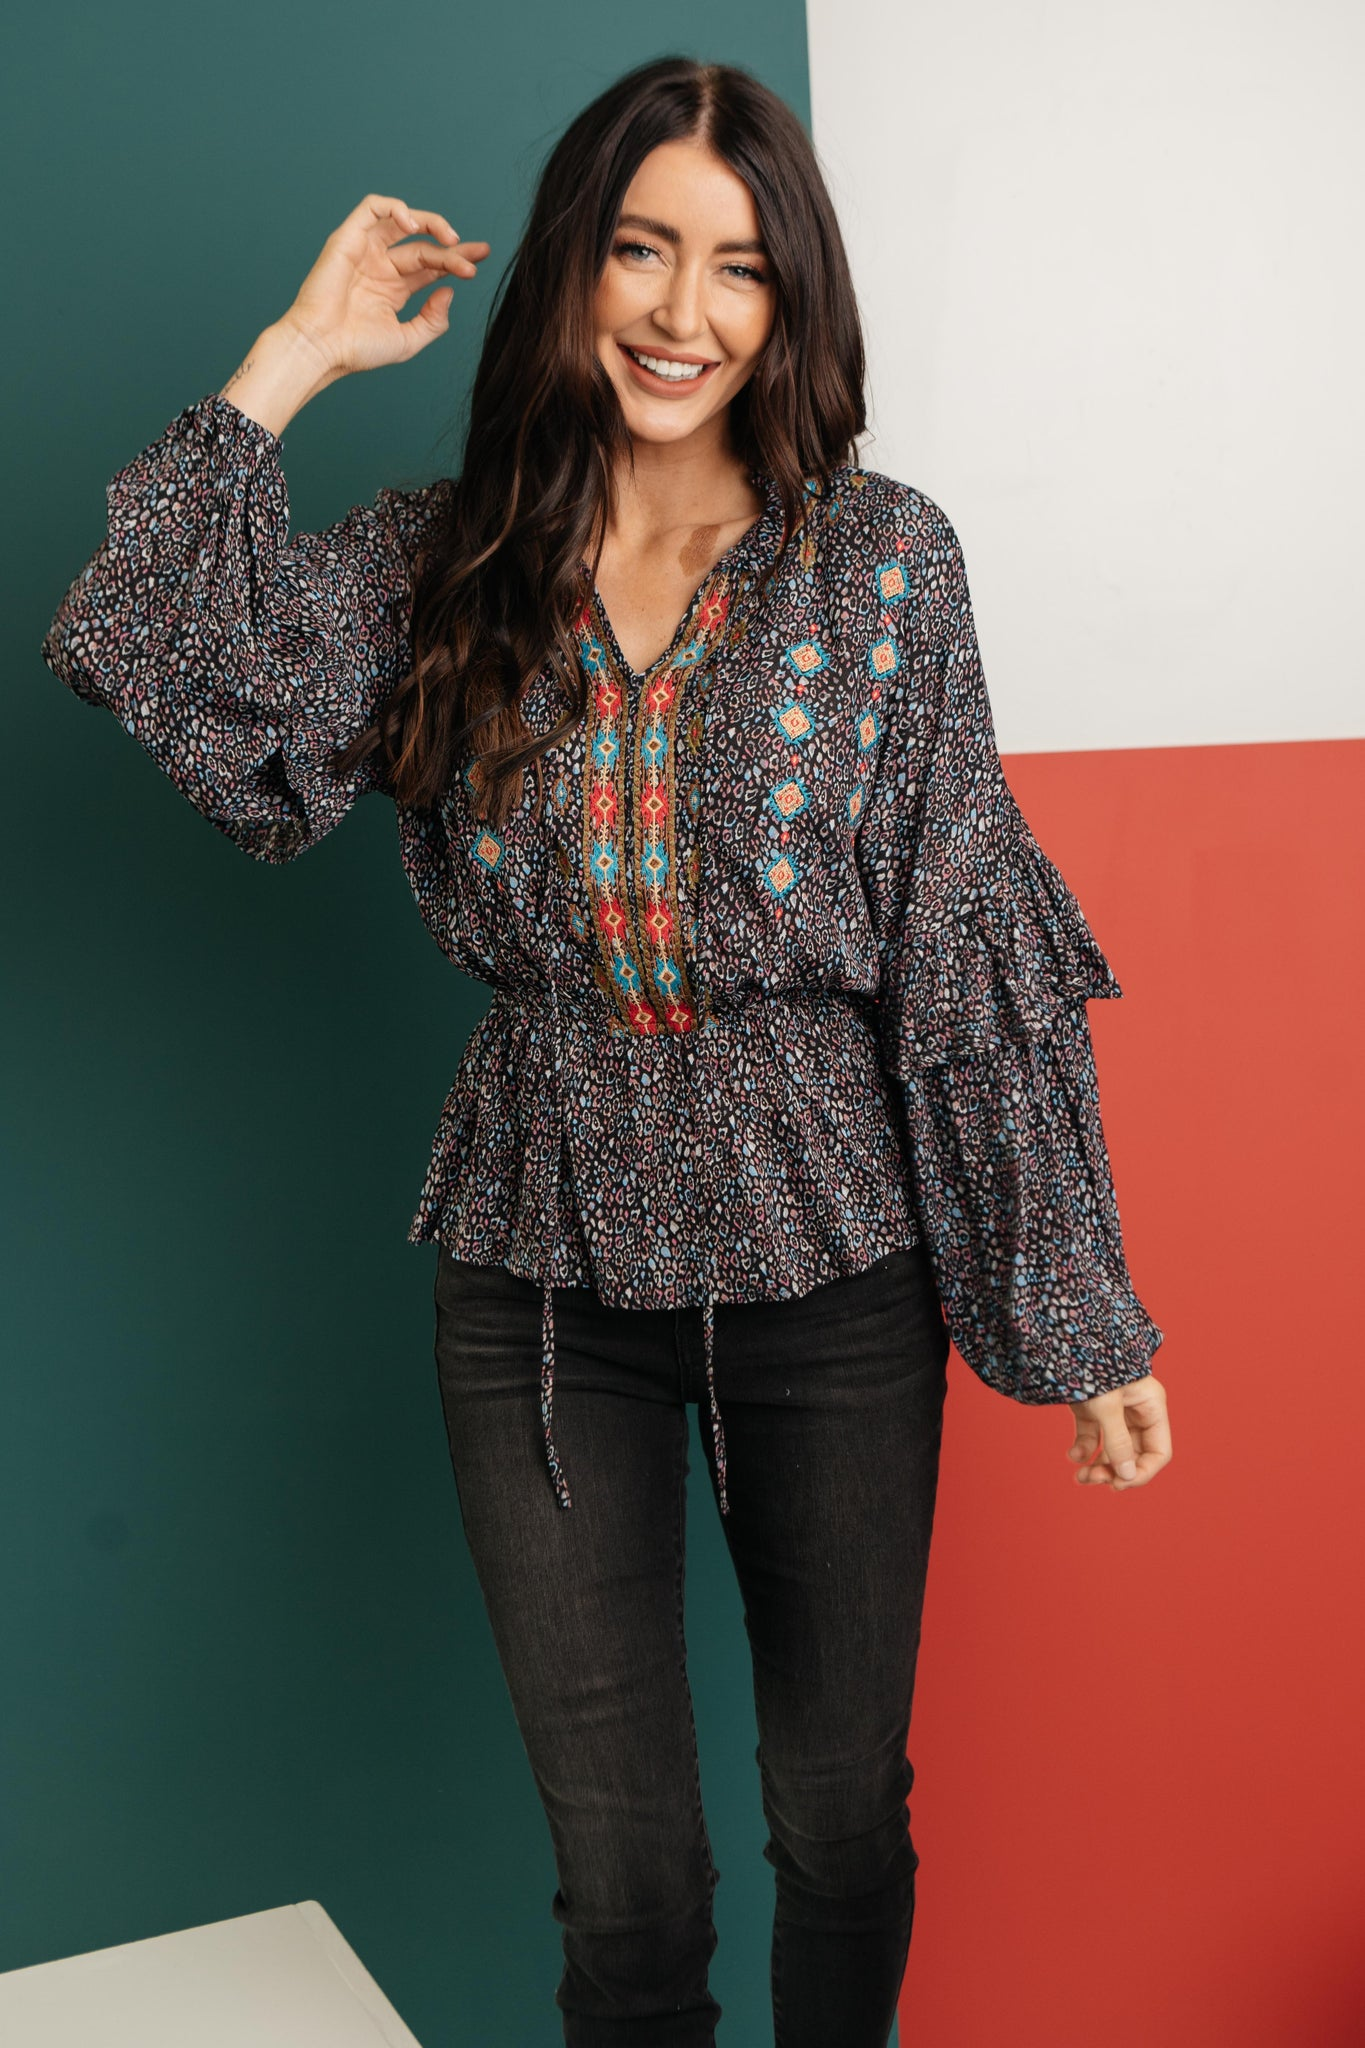 The Busy Body Blouse